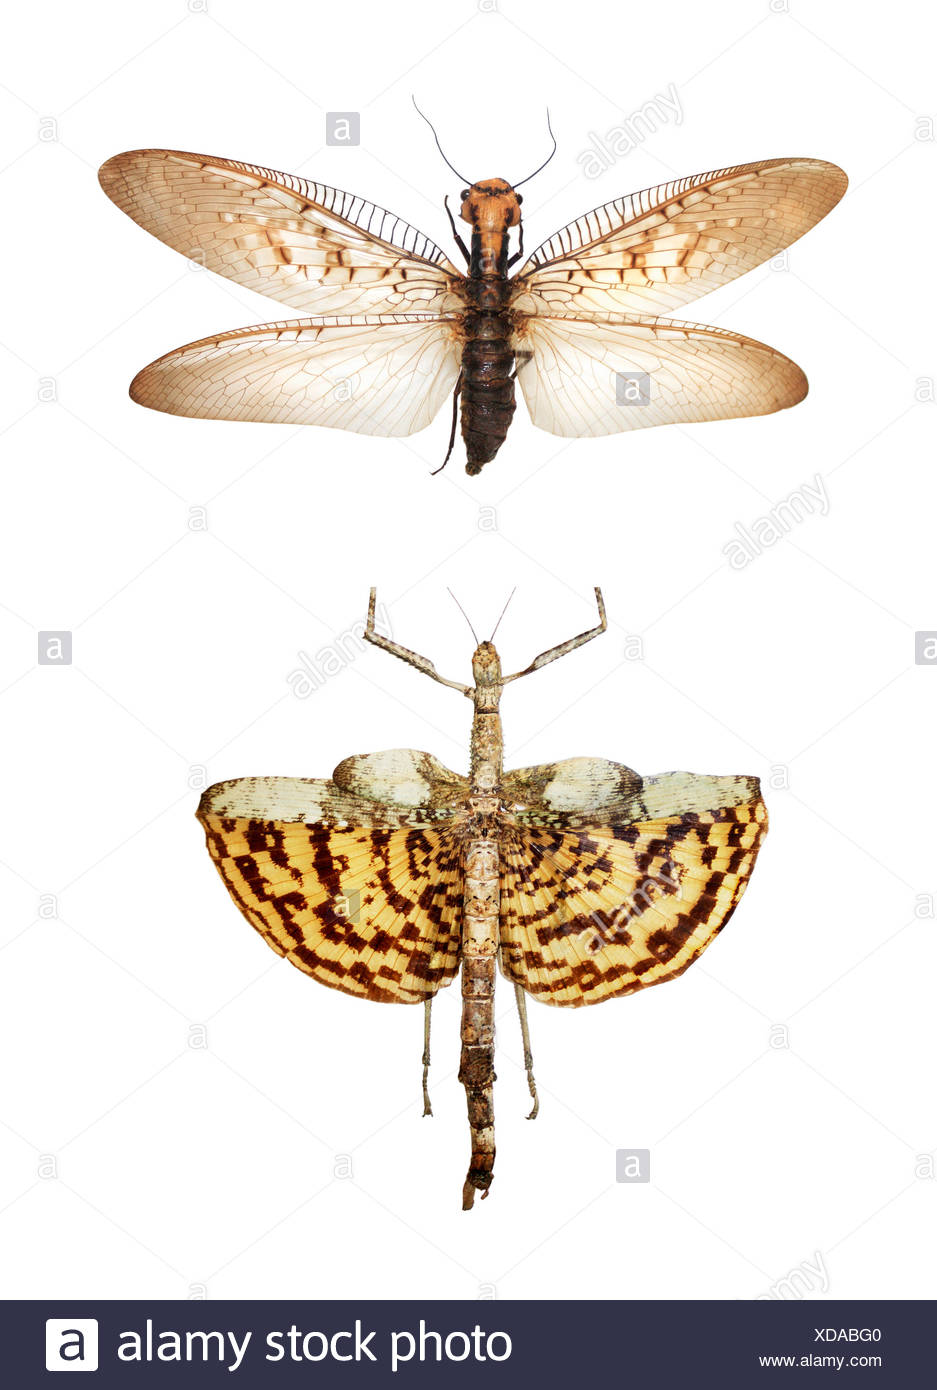 Gigantic tropical insects - Stock Image